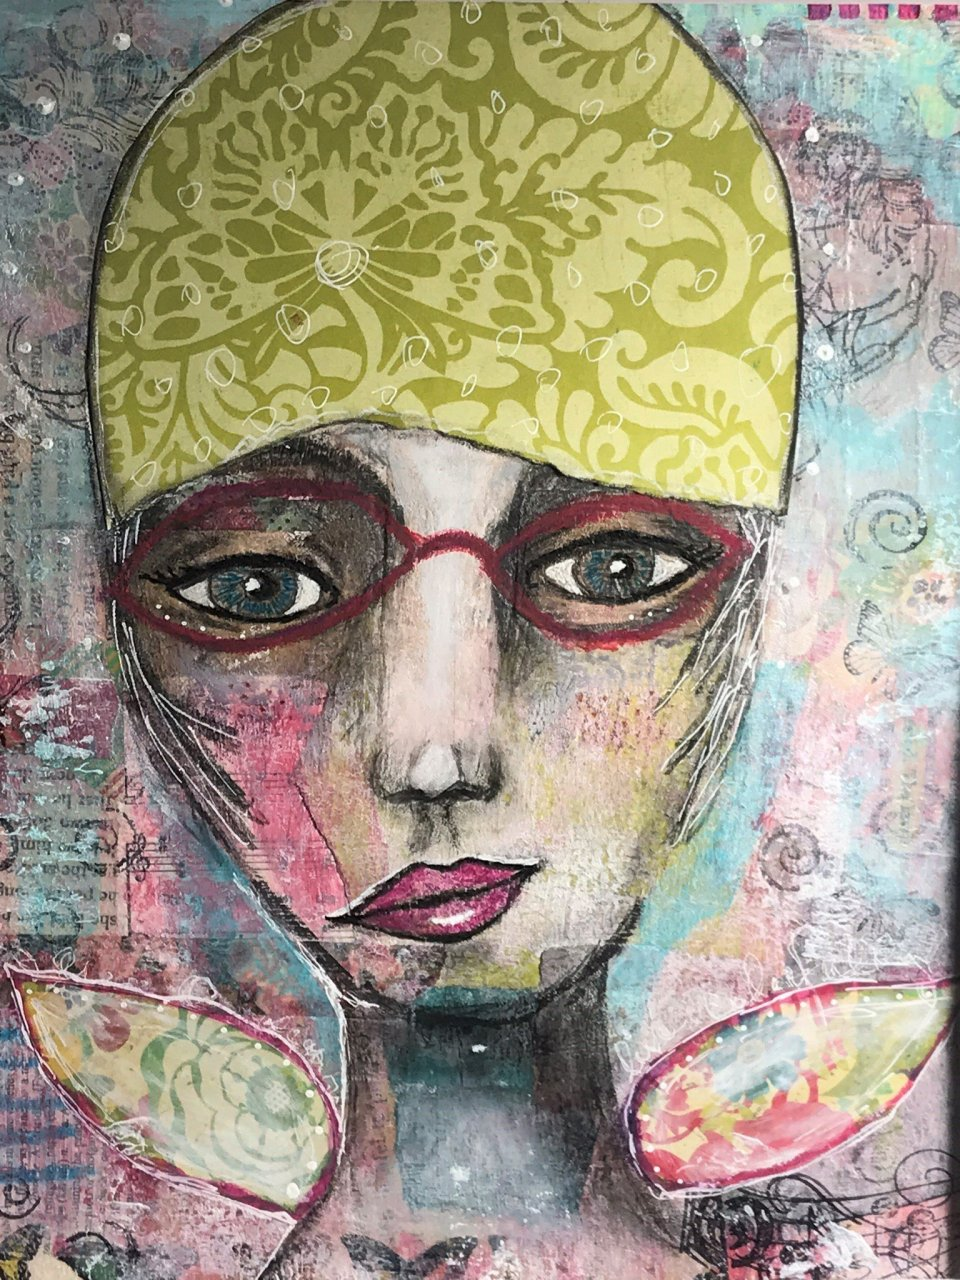 mixed media art of a woman's whimsical face with red glasses and green swim cap